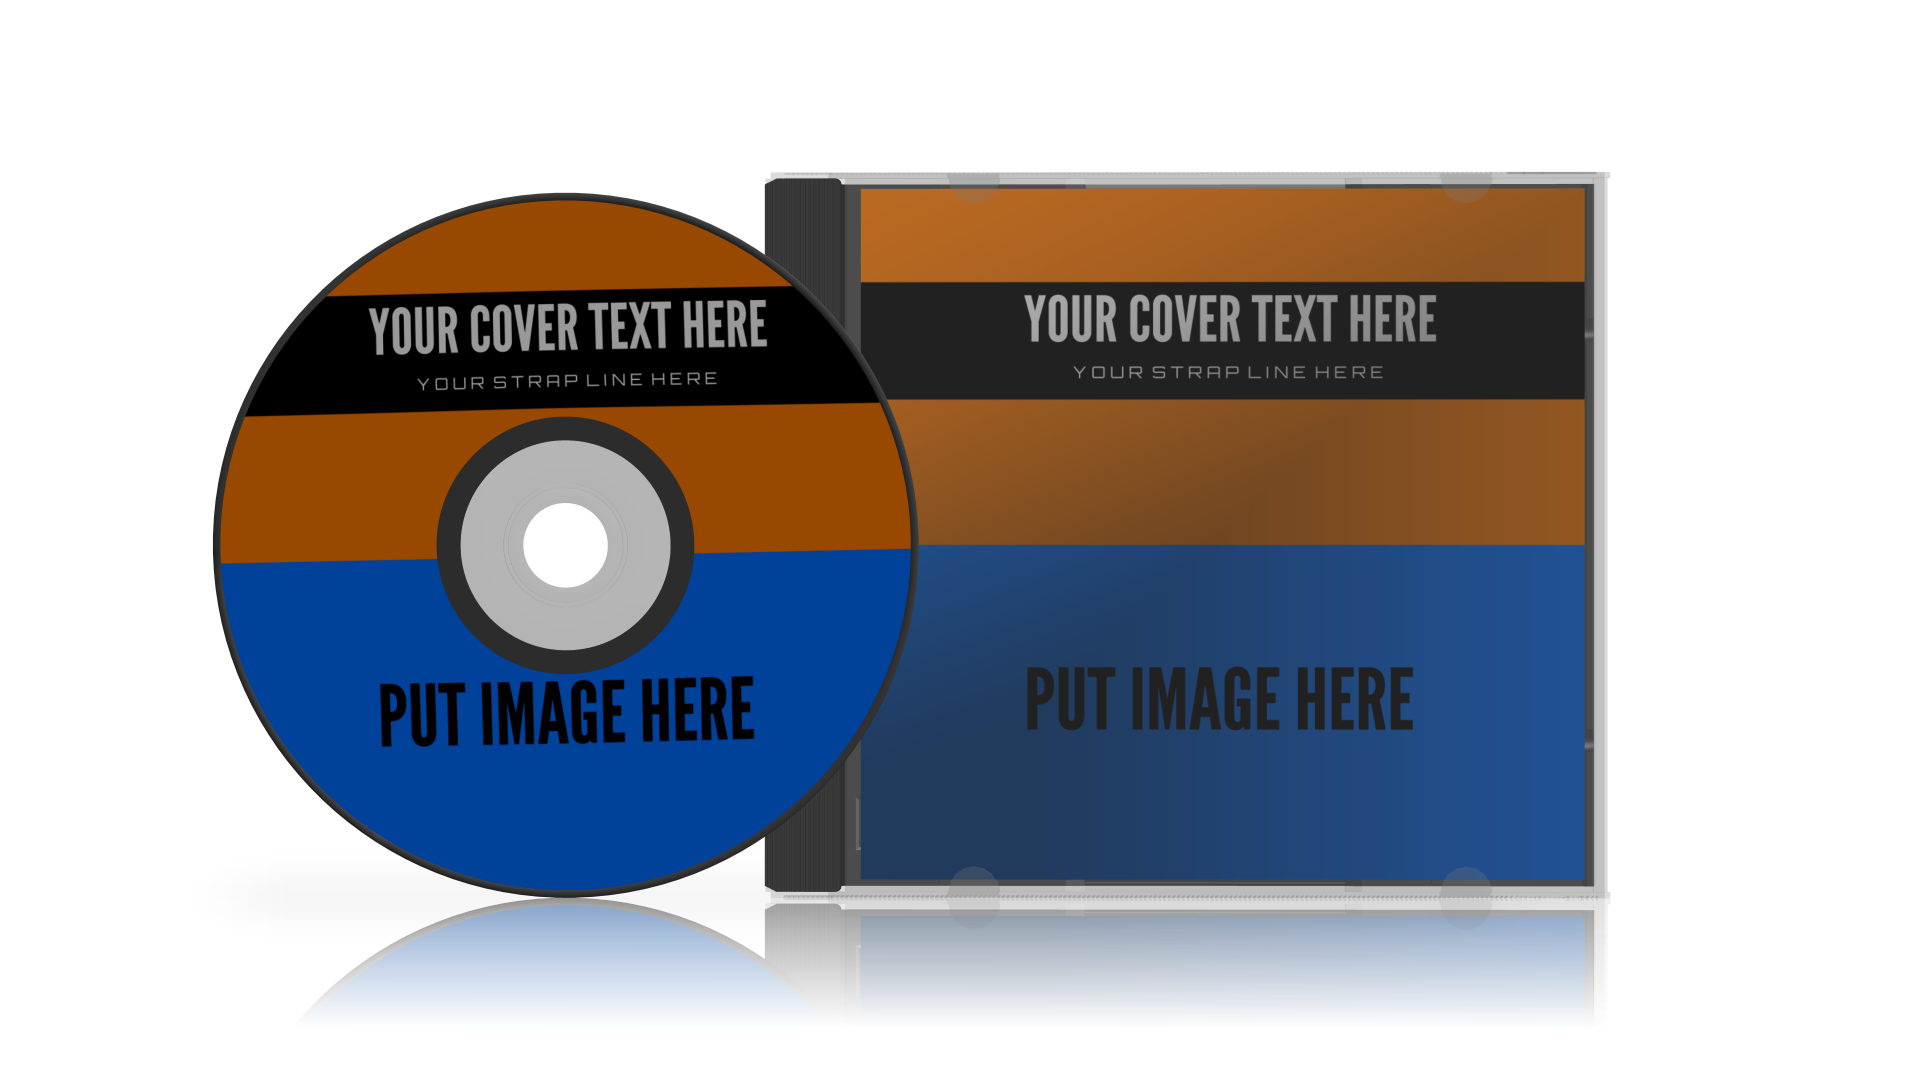 3D model CD jewel case with CD to the left. Rendered in 3D Box Shot Pro with Shadows and reflection.